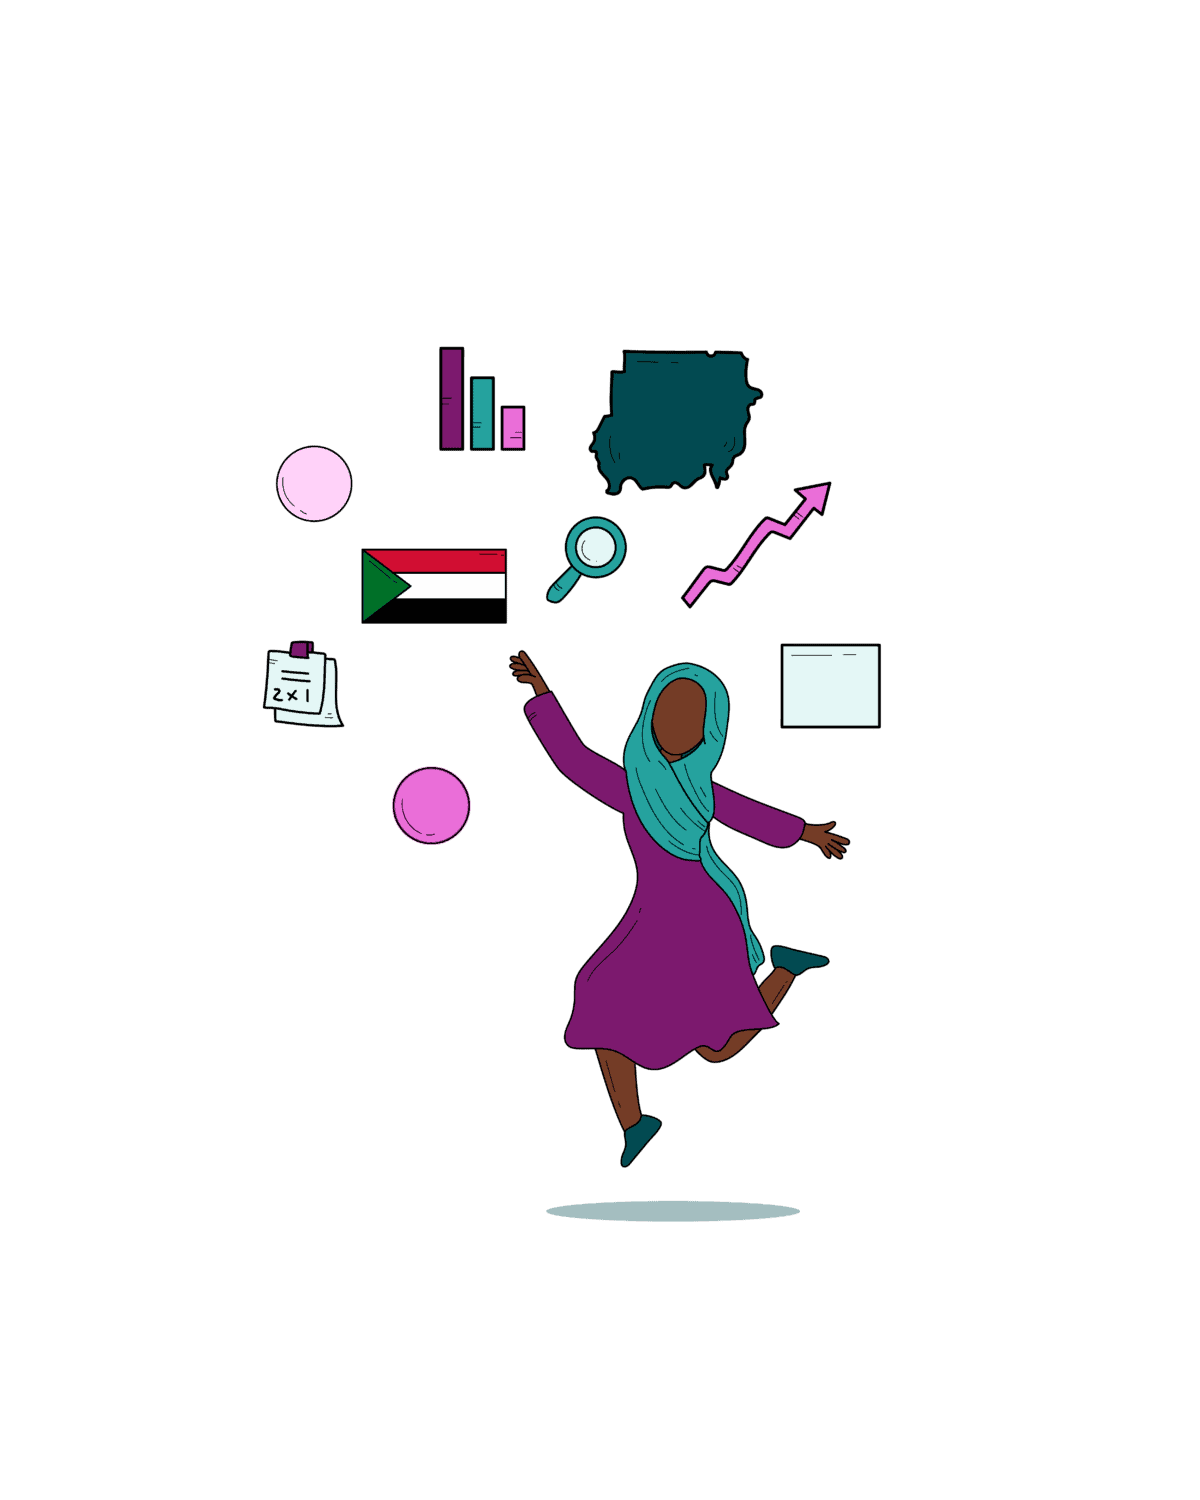 Woman reaching for information